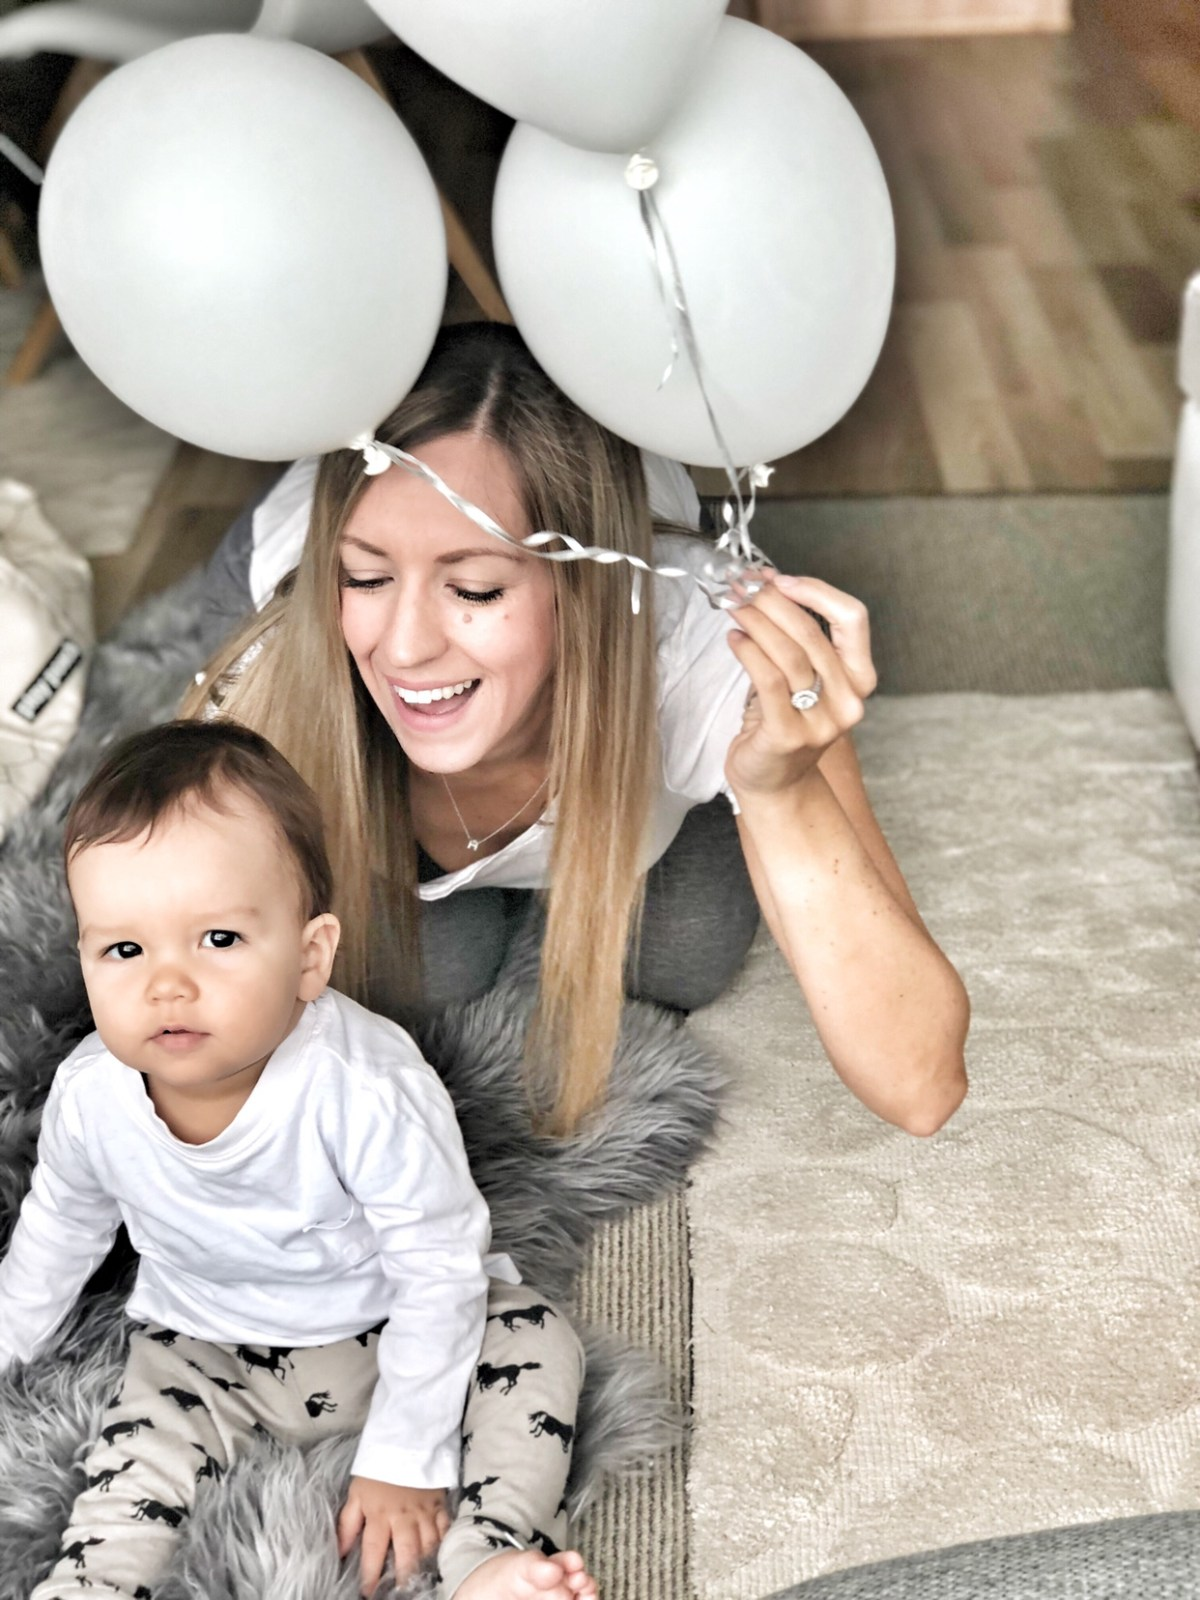 mom and baby with balloons